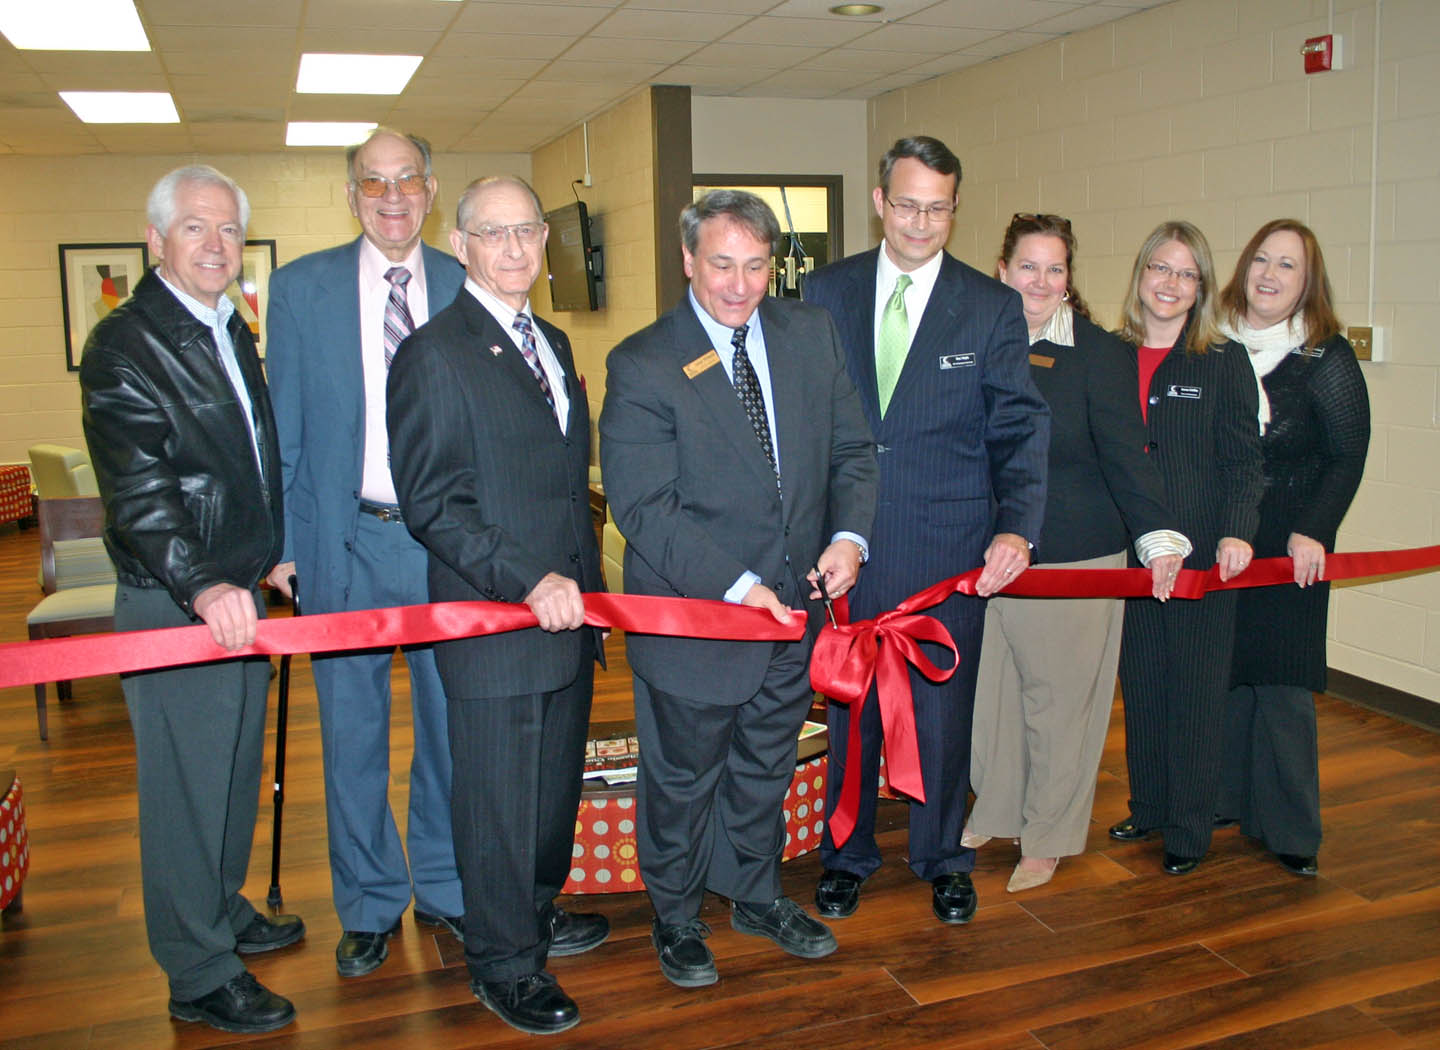 Read the full story, CCCC opens 'front door' to Lee Campus